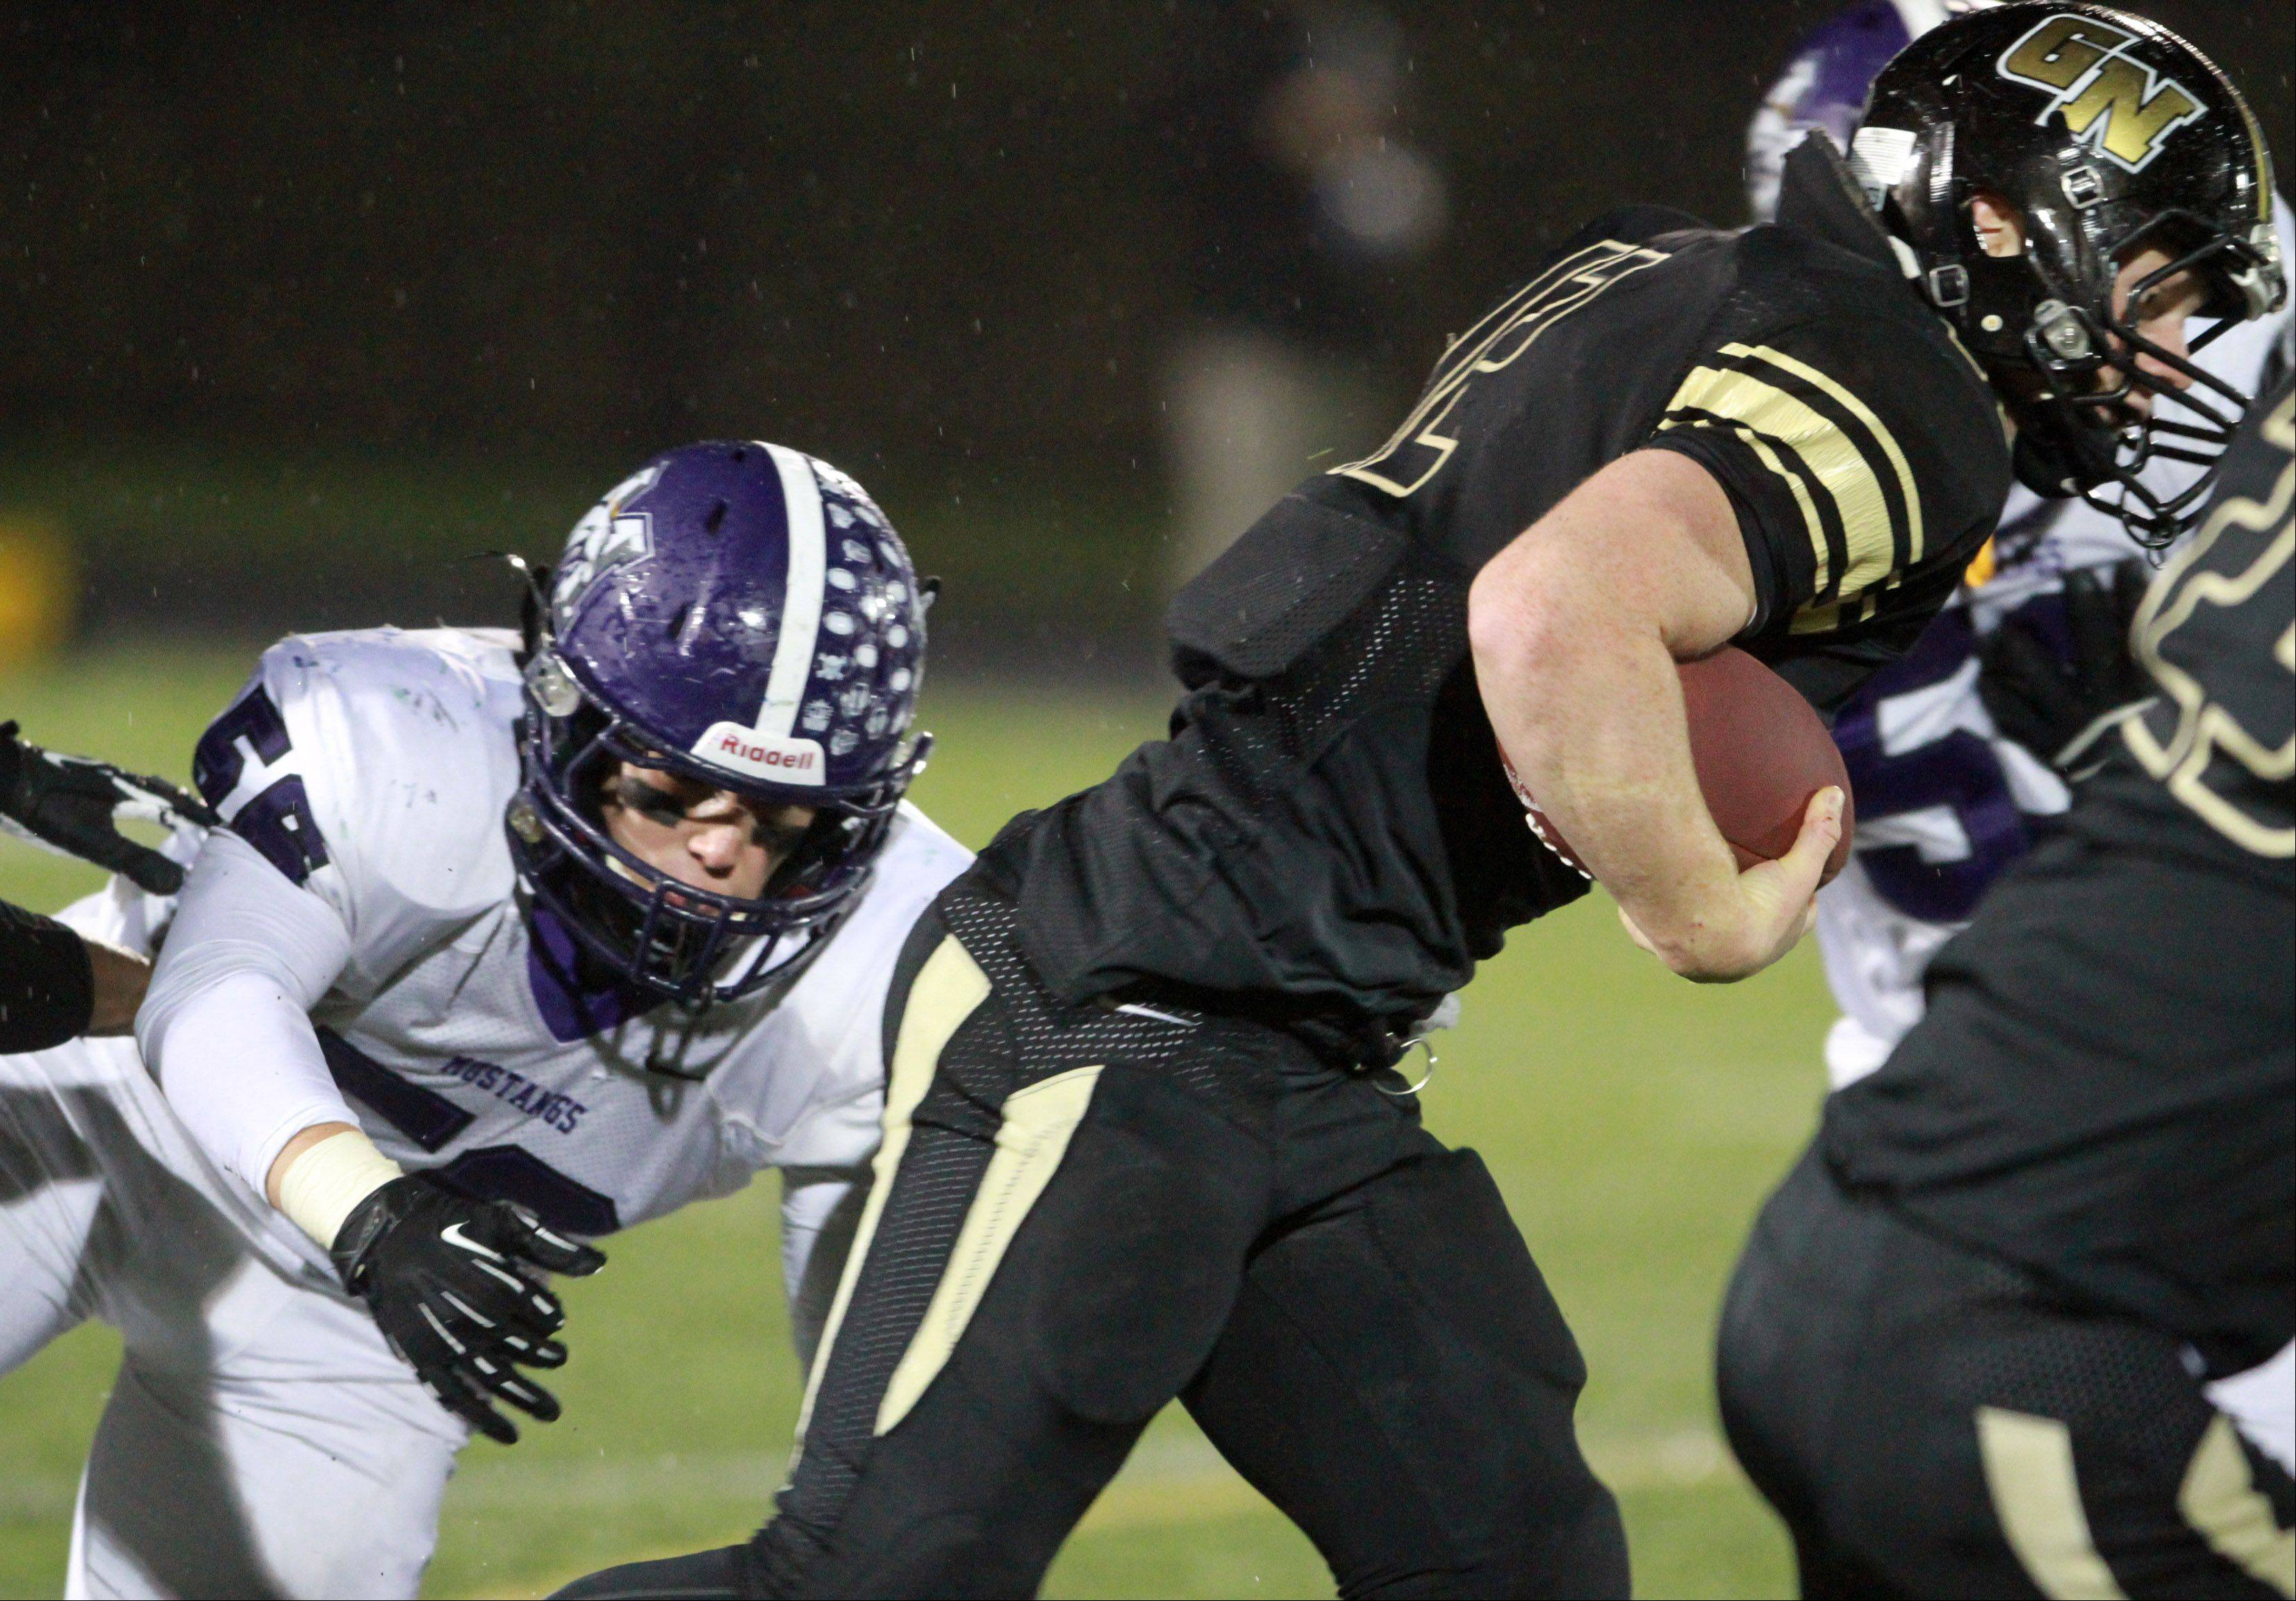 Playoffs -Round One- Photos from the Rolling Meadows at Grayslake North football game on Friday, Nov. 1.